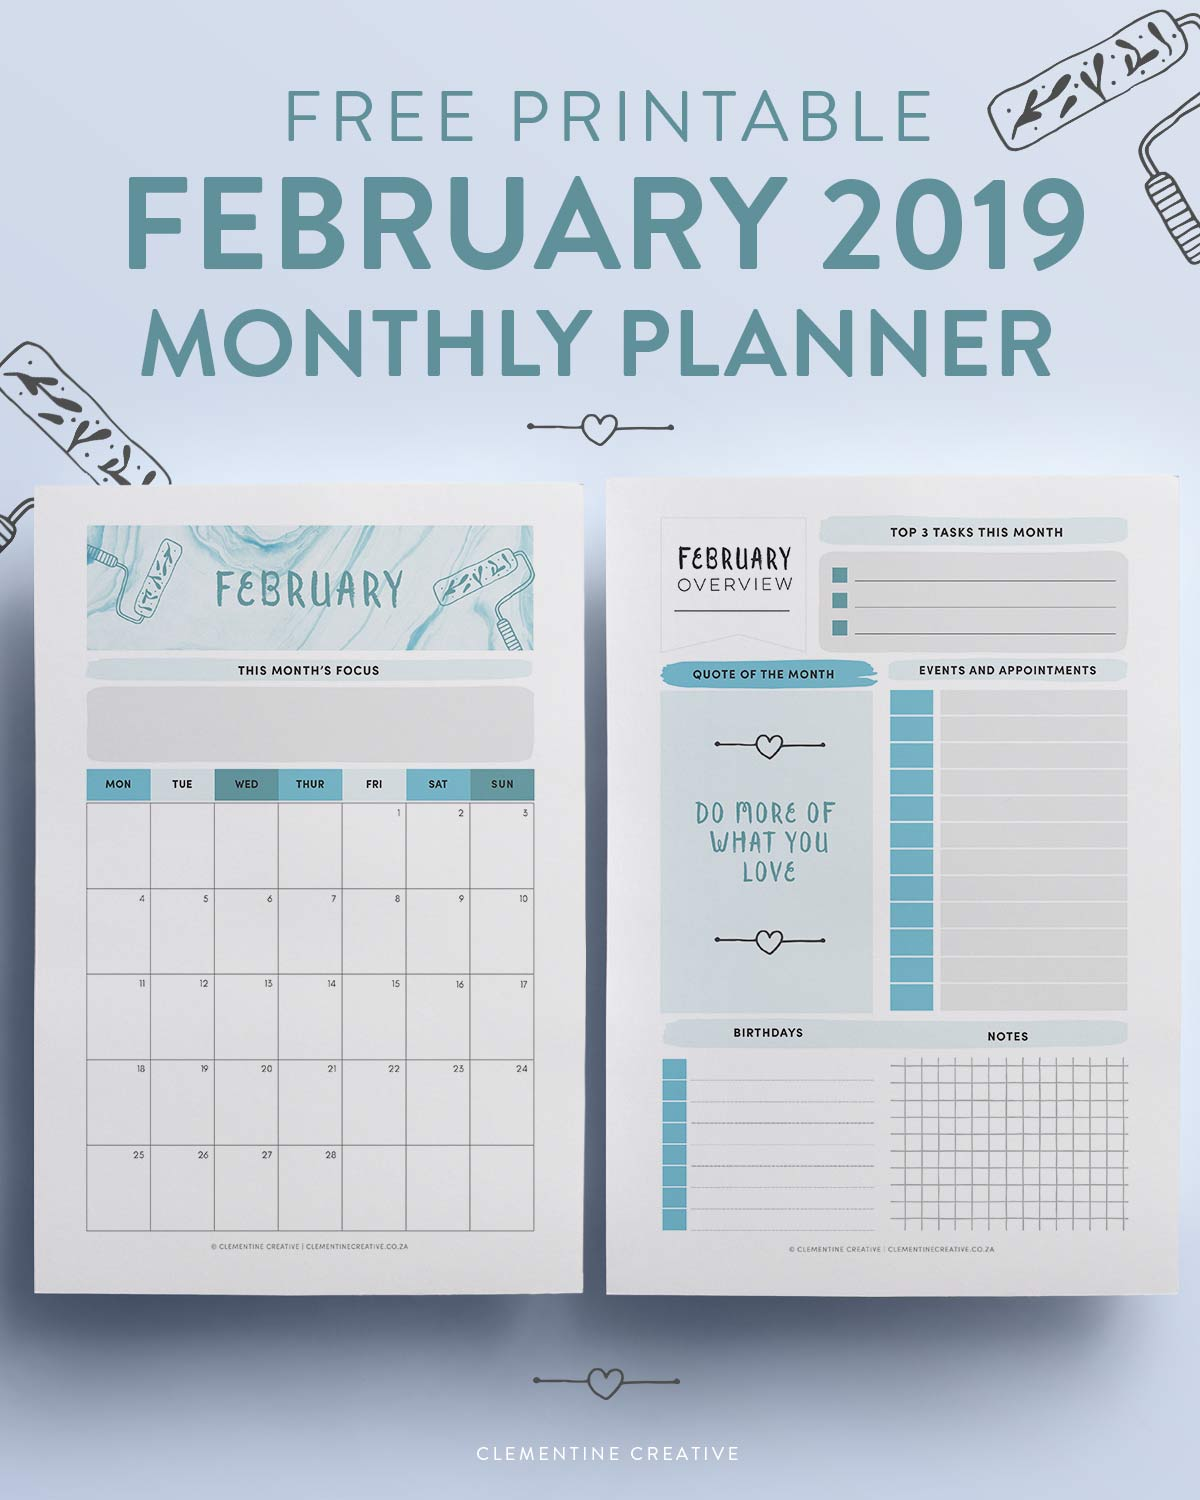 free printable February 2019 monthly planner